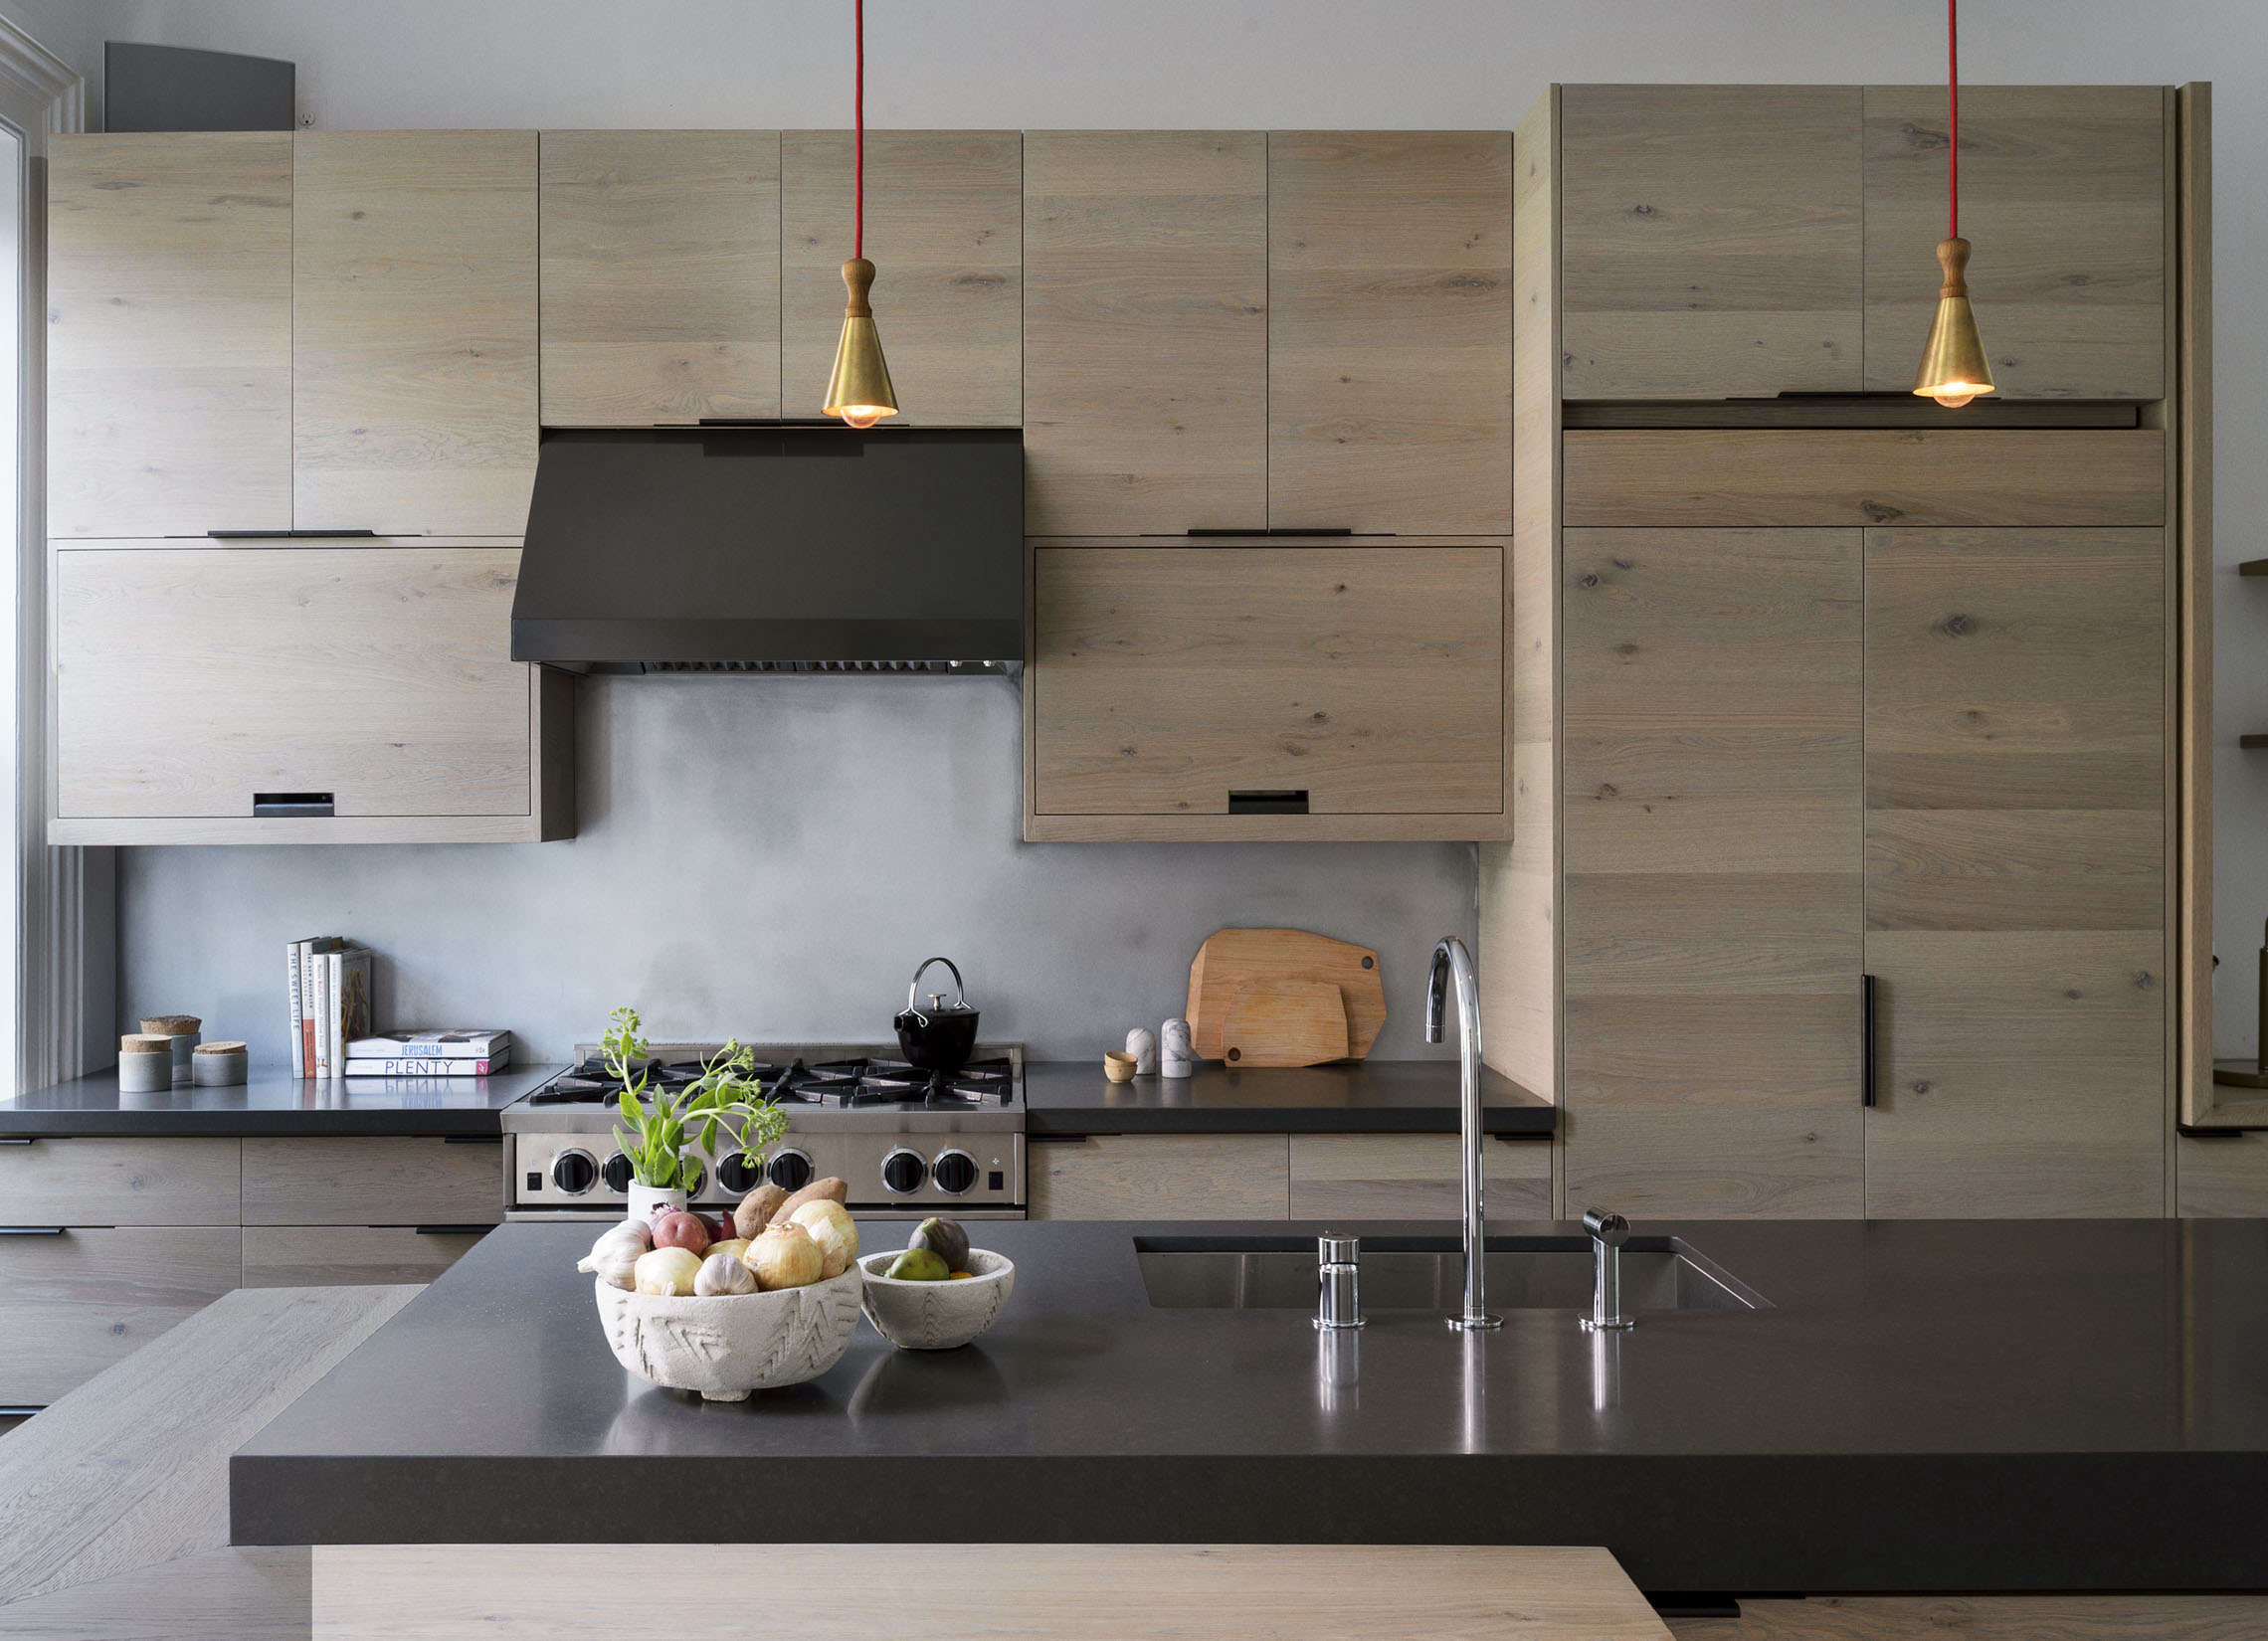 brooklyn kitchen with custom oak cabinets, design by workstead, photograph by m 11